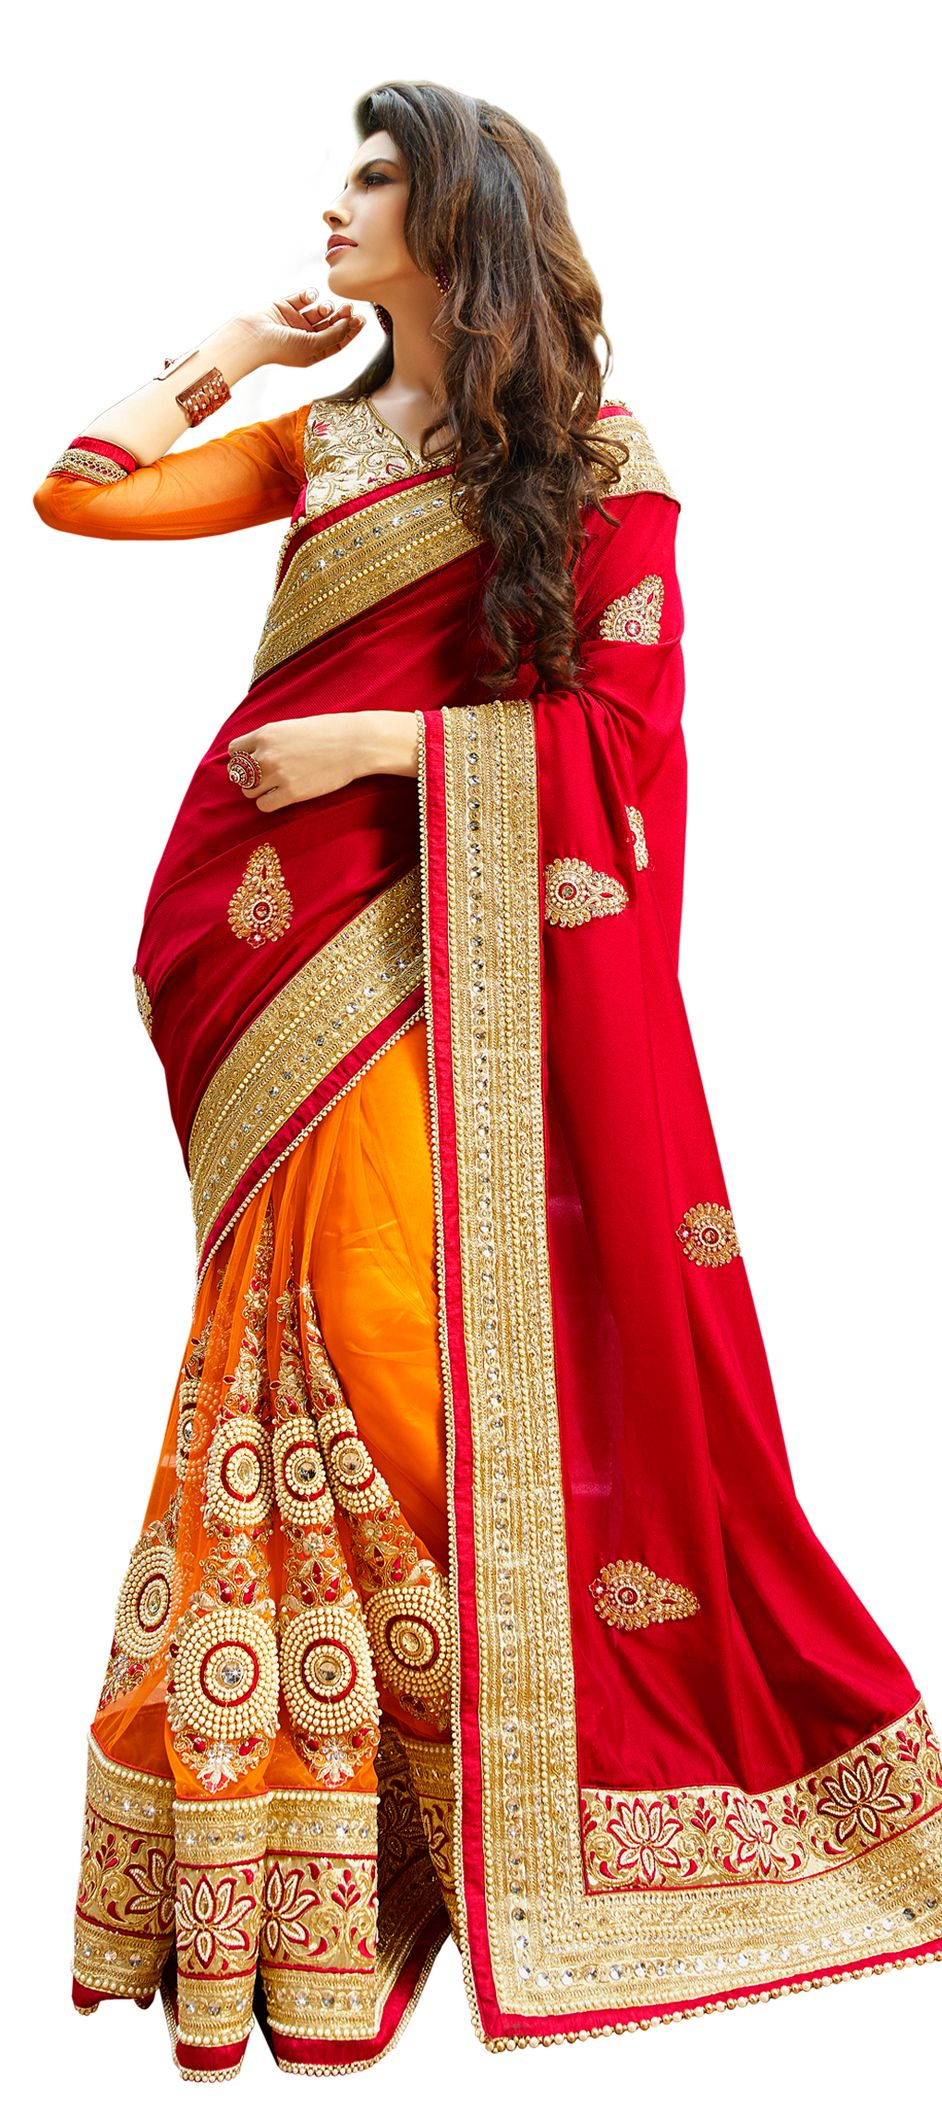 41e30bd1973 Net Bridal Saree in Red and Maroon with Resham work